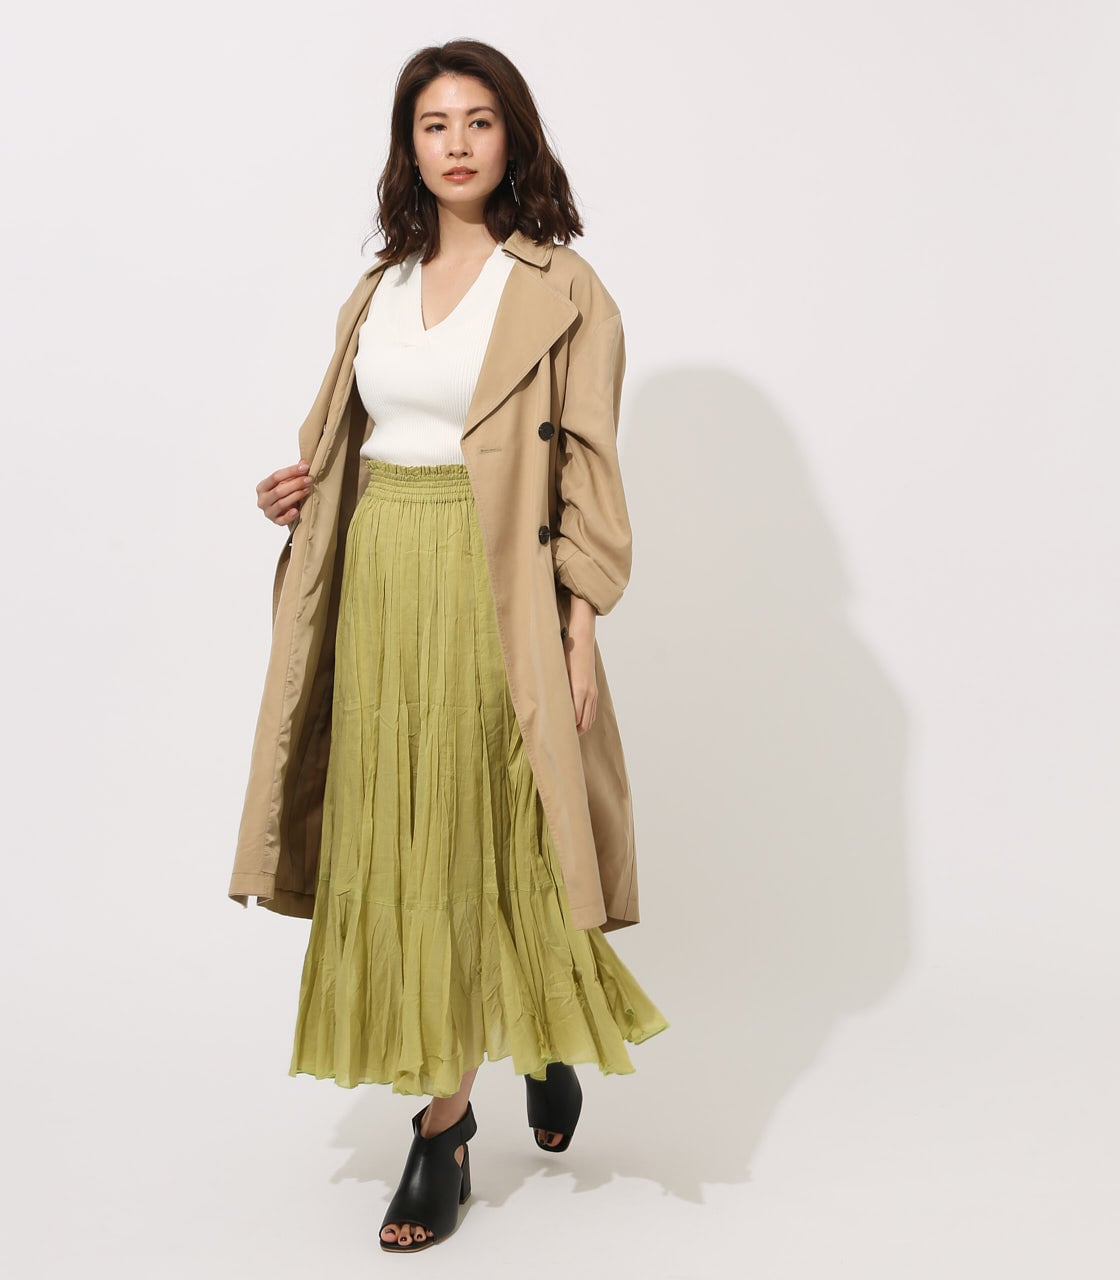 LYOCELL TRENCH COAT 【MOOK49掲載 90015】 詳細画像 BEG 4